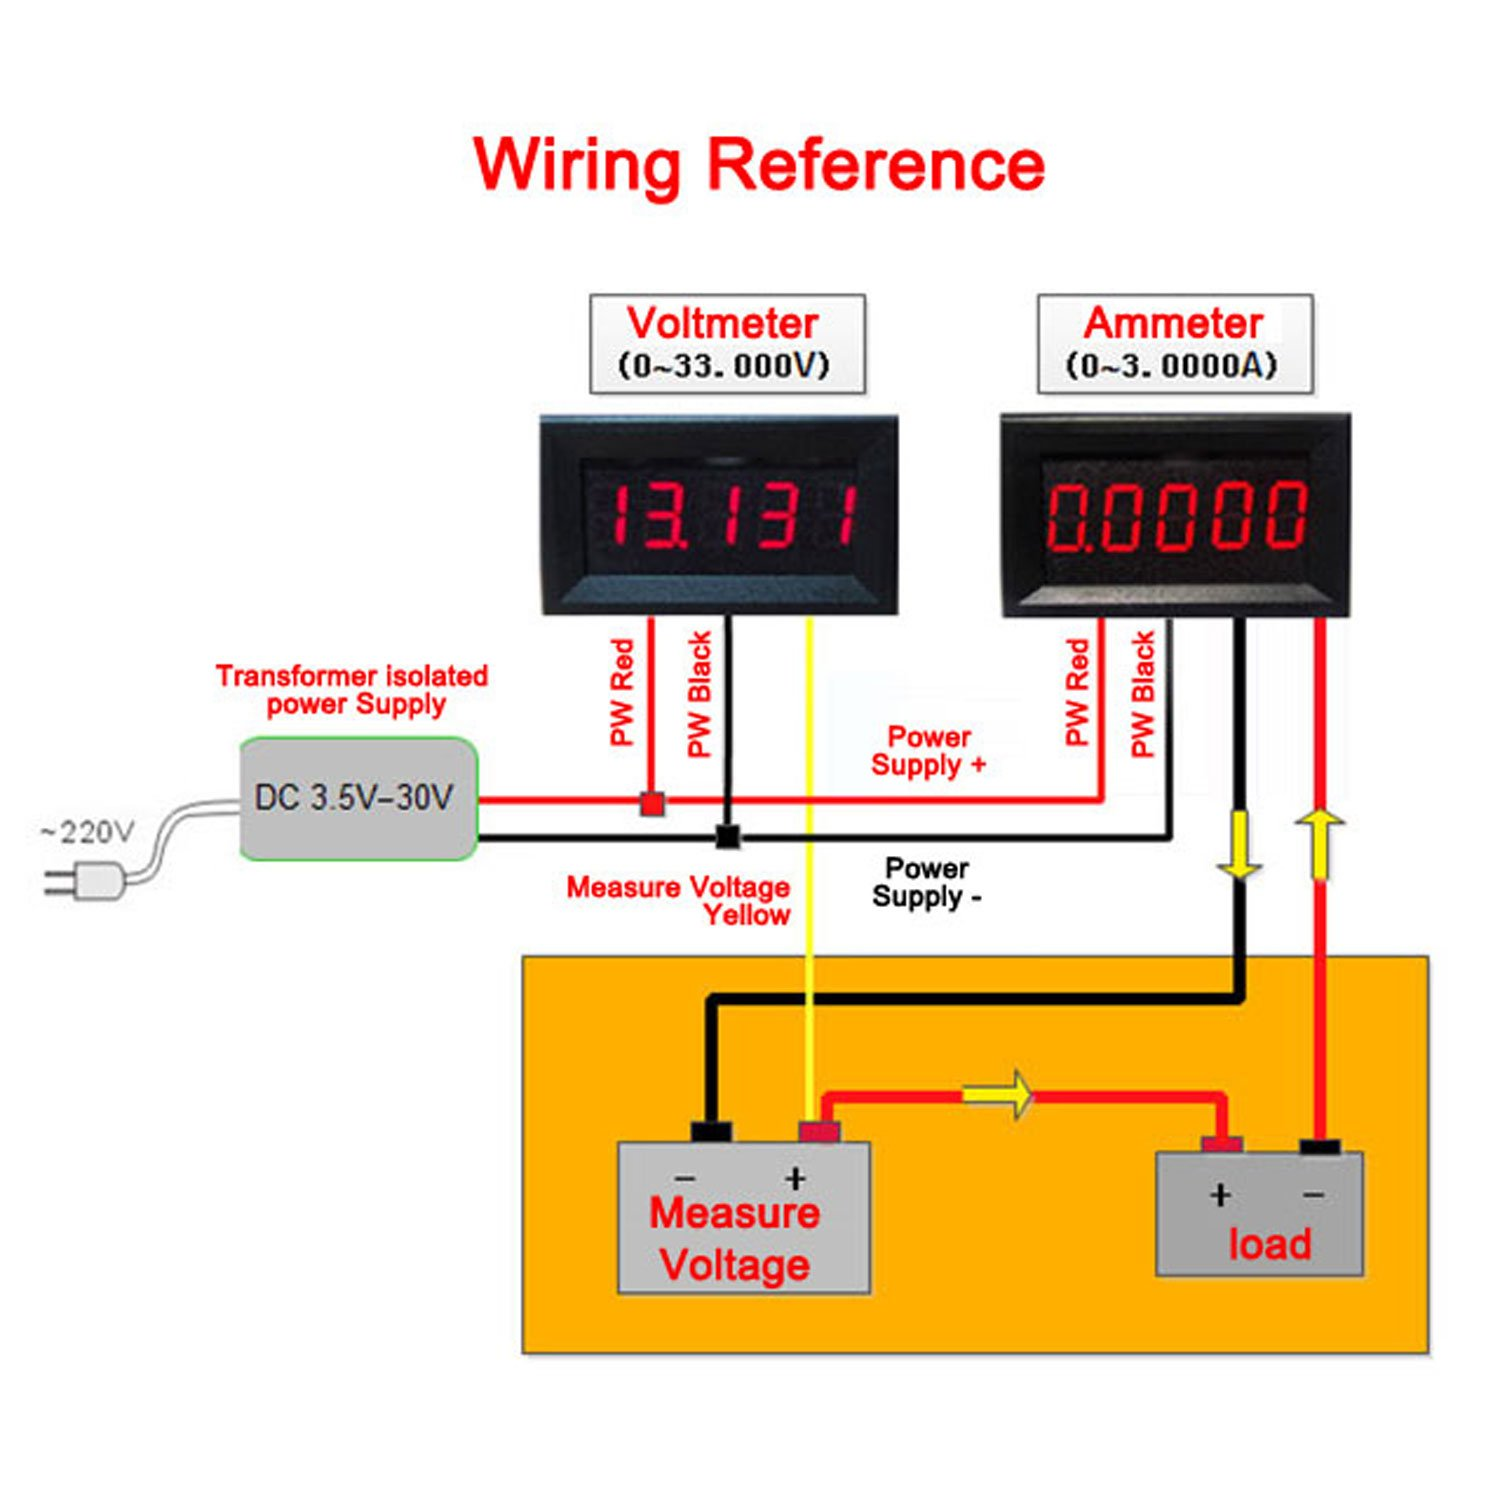 Ac Panel Voltmeter Wiring Not Lossing Diagram Digital Blue Sea Zero Center Dc Ammeter Amp Mount